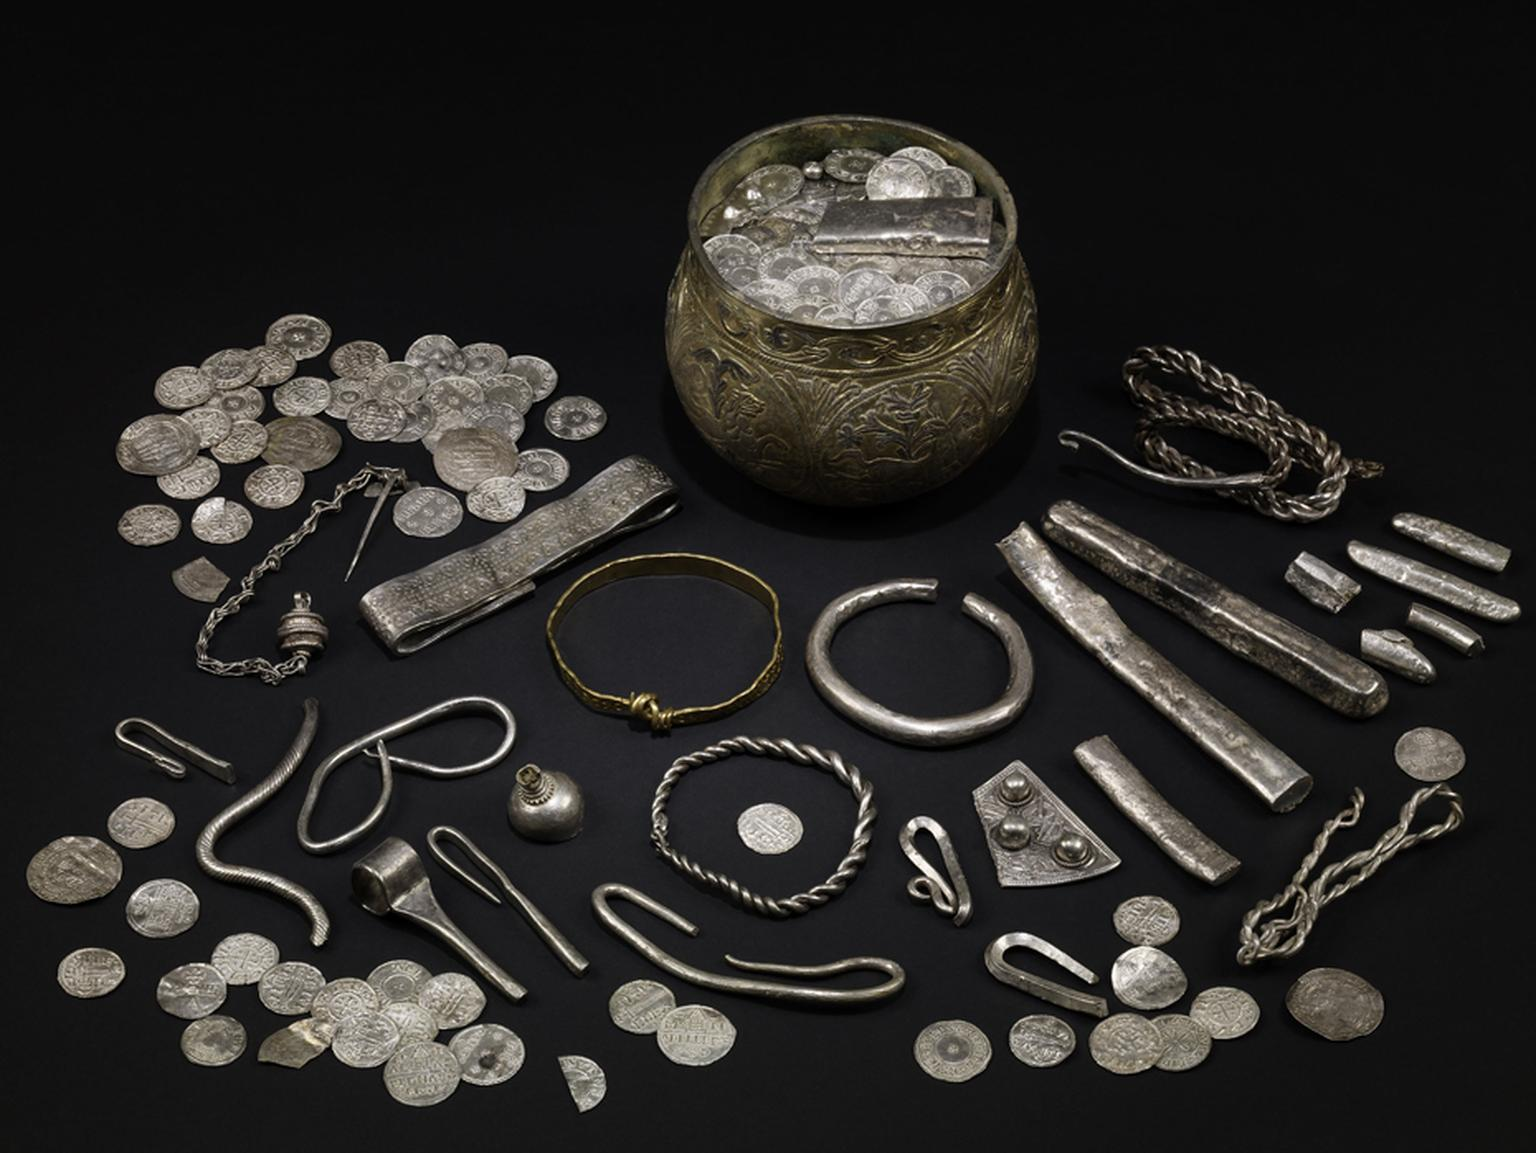 900 AD The Vale of York hoard featuring silver-gilt, gold and silver. North Yorkshire, England. © The Trustees of the British Museum